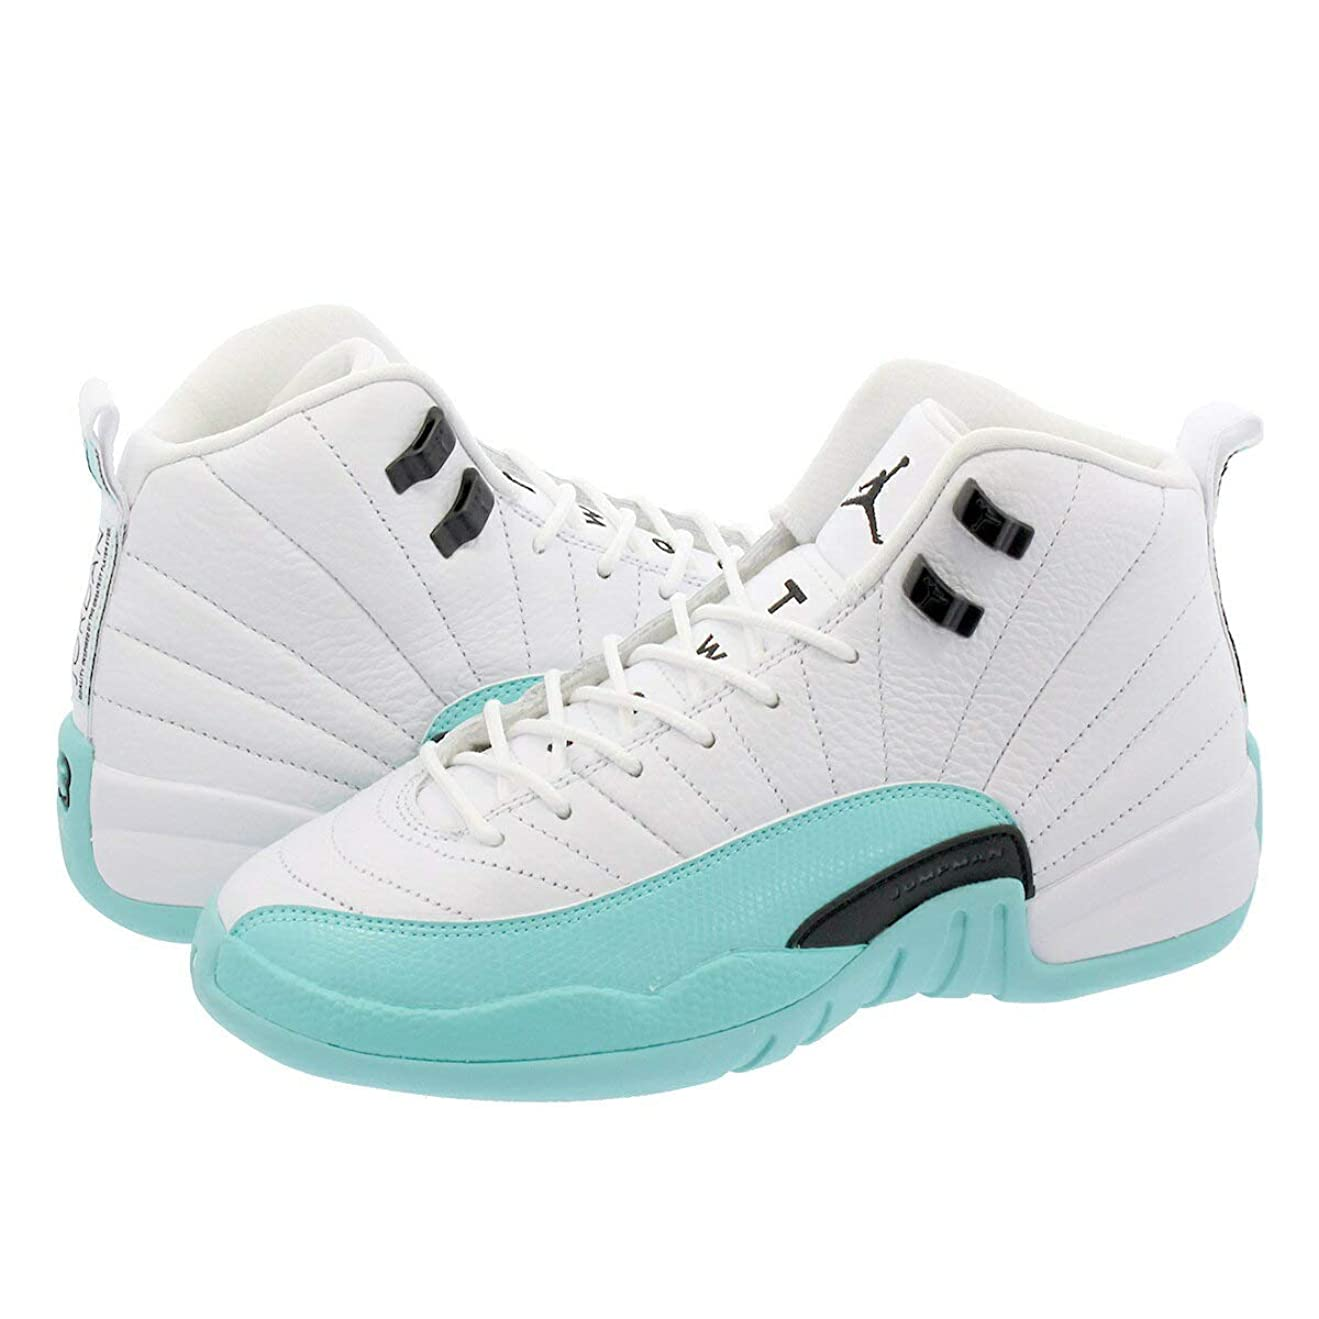 形ラブ認識[ナイキ] AIR JORDAN 12 RETRO GG WHITE/LIGHT AQUA/BLACK [並行輸入品]